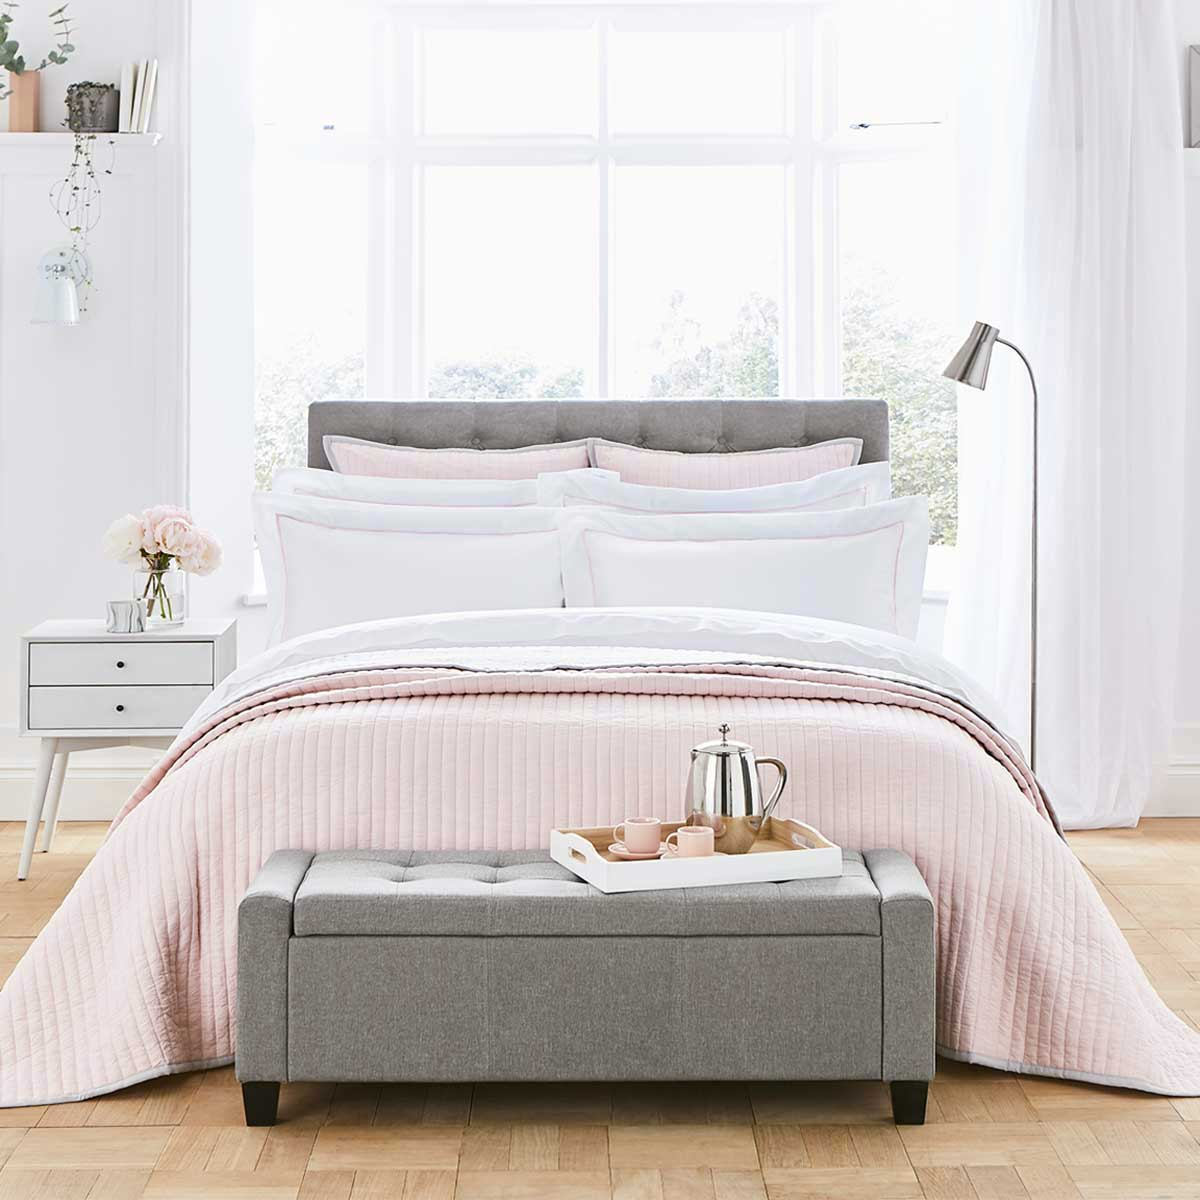 How to introduce a Pop of Pink to your bedroom